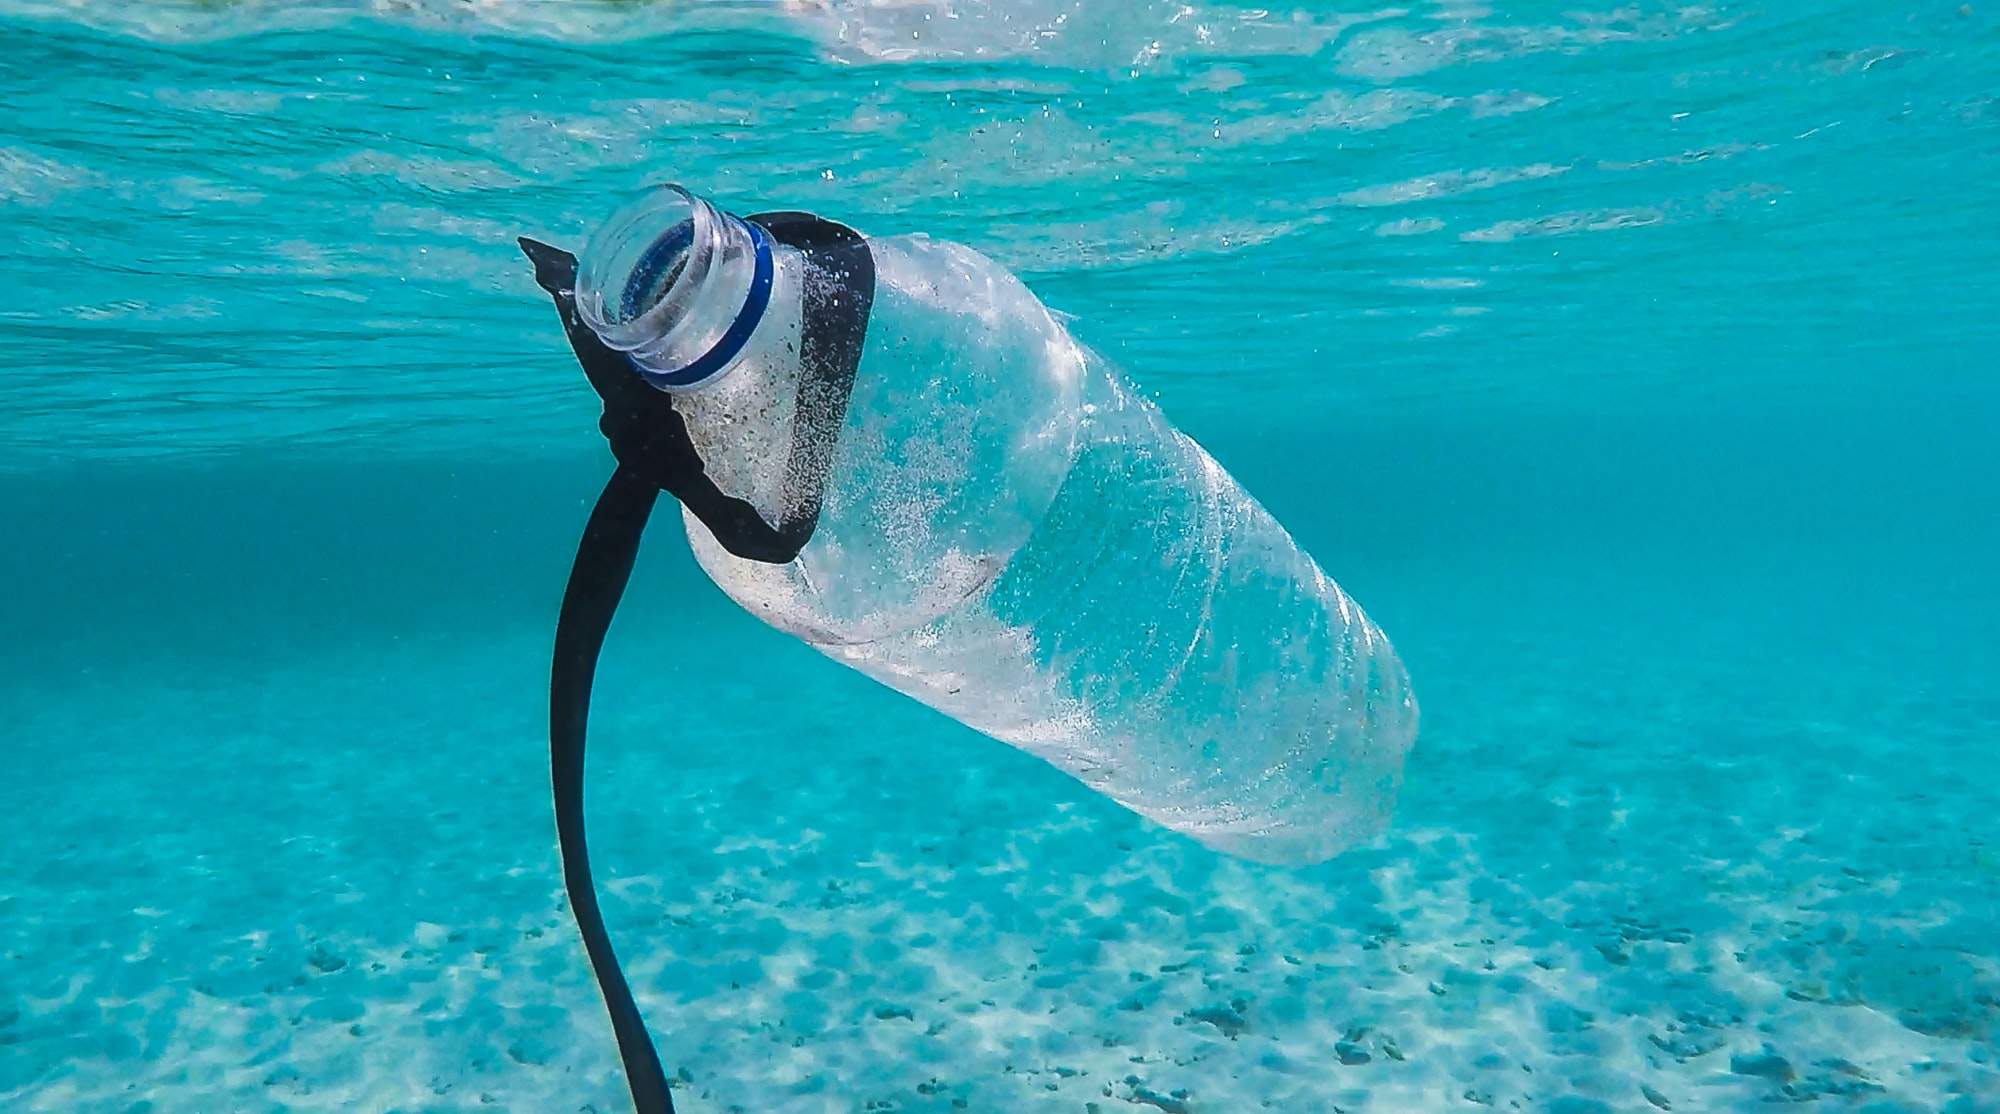 A single-use plastic water bottle that I found while snorkeling in The Gili Islands, Indonesia. Use less plastic when you travel, it makes a real difference! Follow on Instagram @wildlife_by_yuri, and find more free plastic pollution photos at: https://www.wildlifebyyuri.com/free-ocean-photography